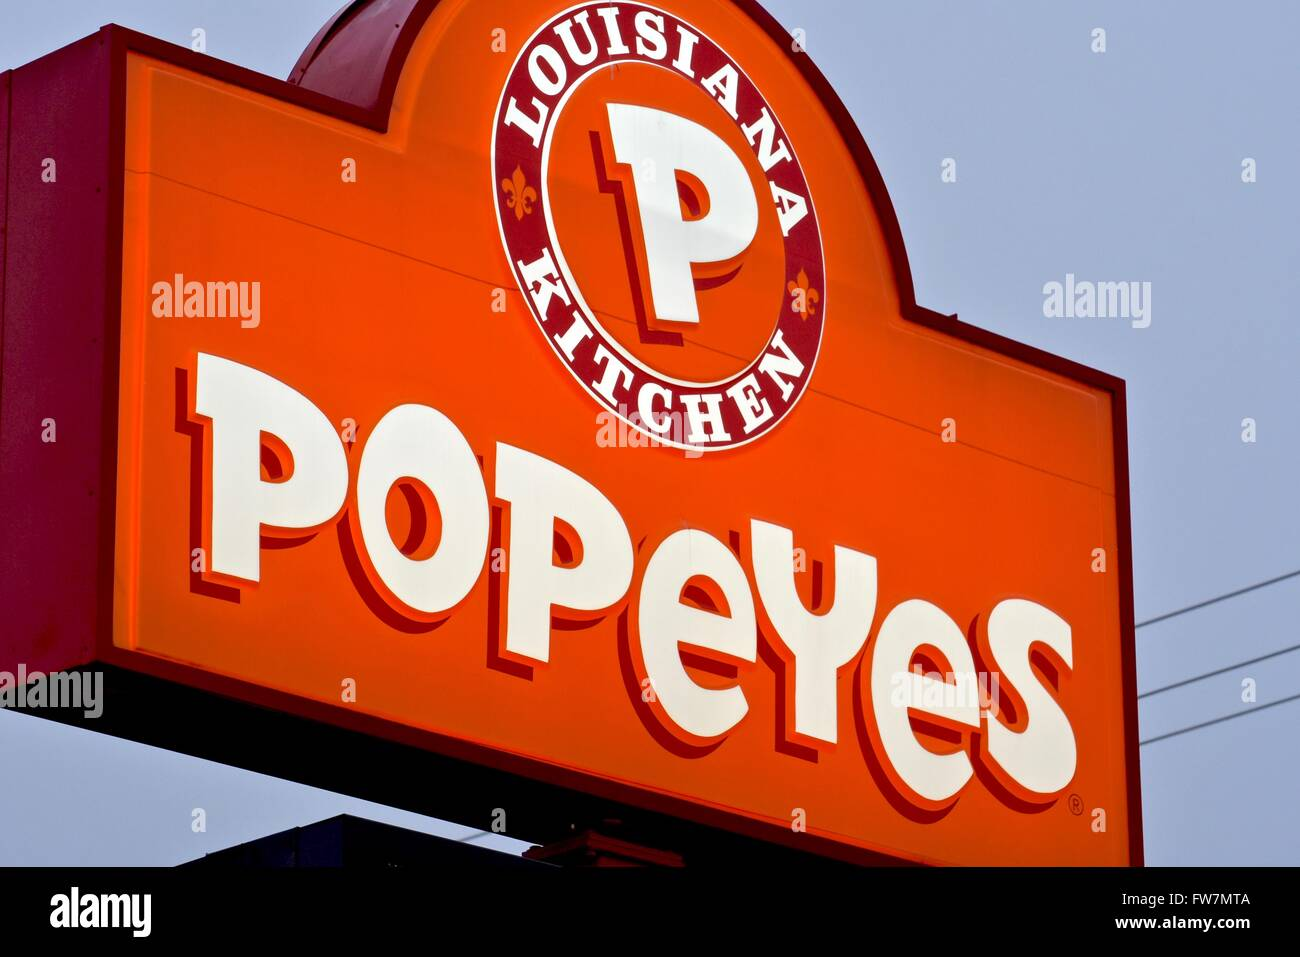 Popeyes Louisiana Kitchen Logo Popeyes Louisiana Kitchen Sign Stock Photo Royalty Free Image